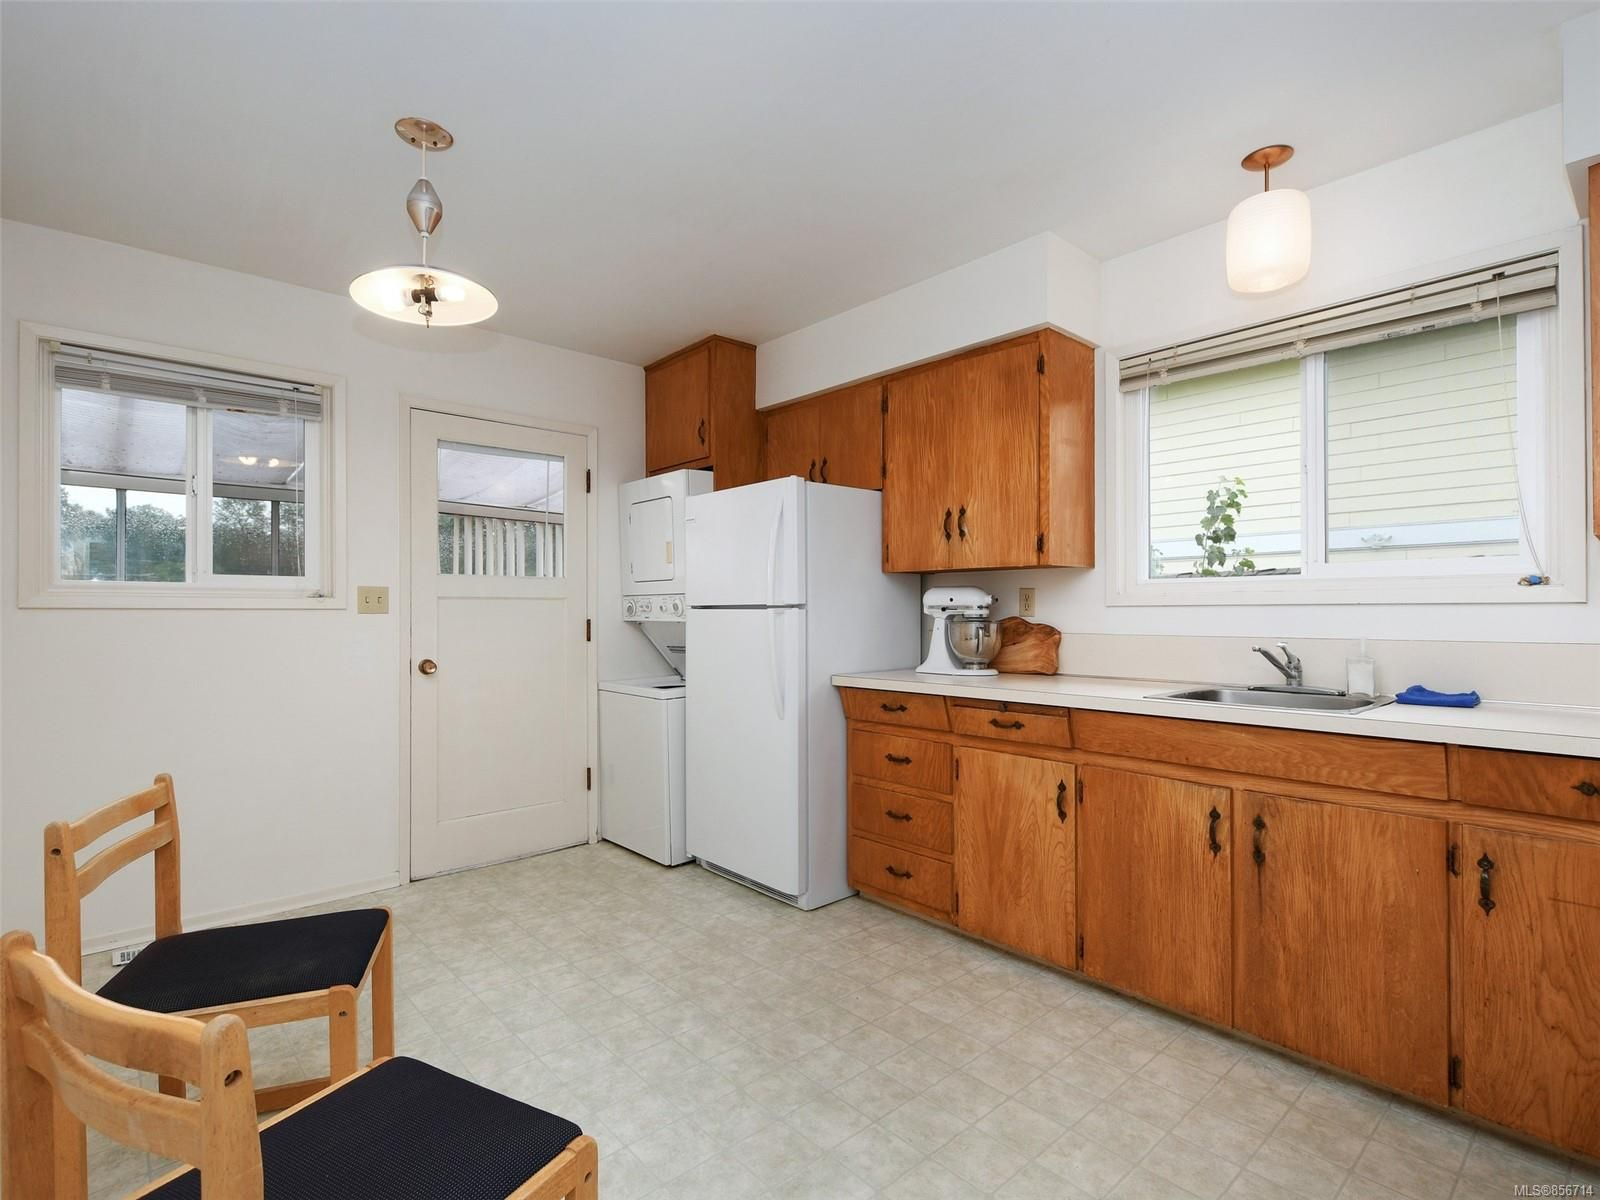 Photo 7: Photos: 3909 Ansell Rd in : SE Mt Tolmie House for sale (Saanich East)  : MLS®# 856714